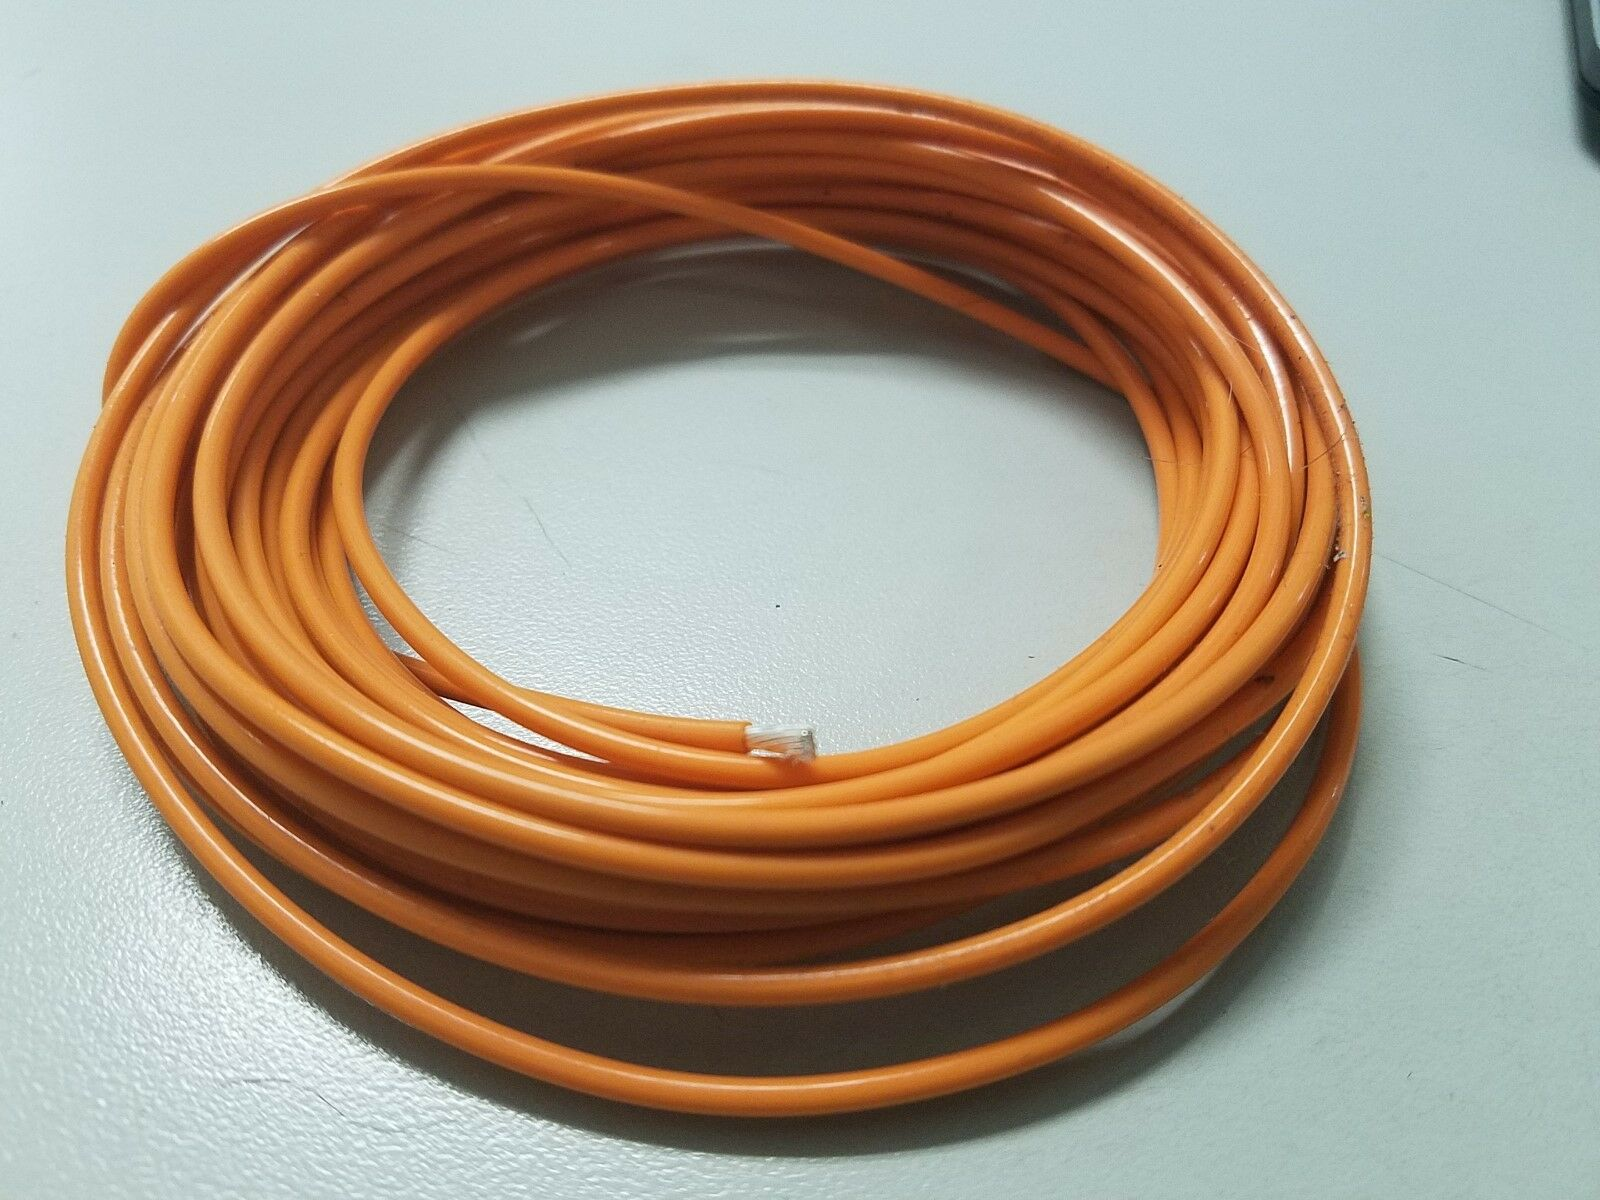 Teflon TFE Wire Orange 14 AWG Multi Stranded Hook up UL 1180 200c ...